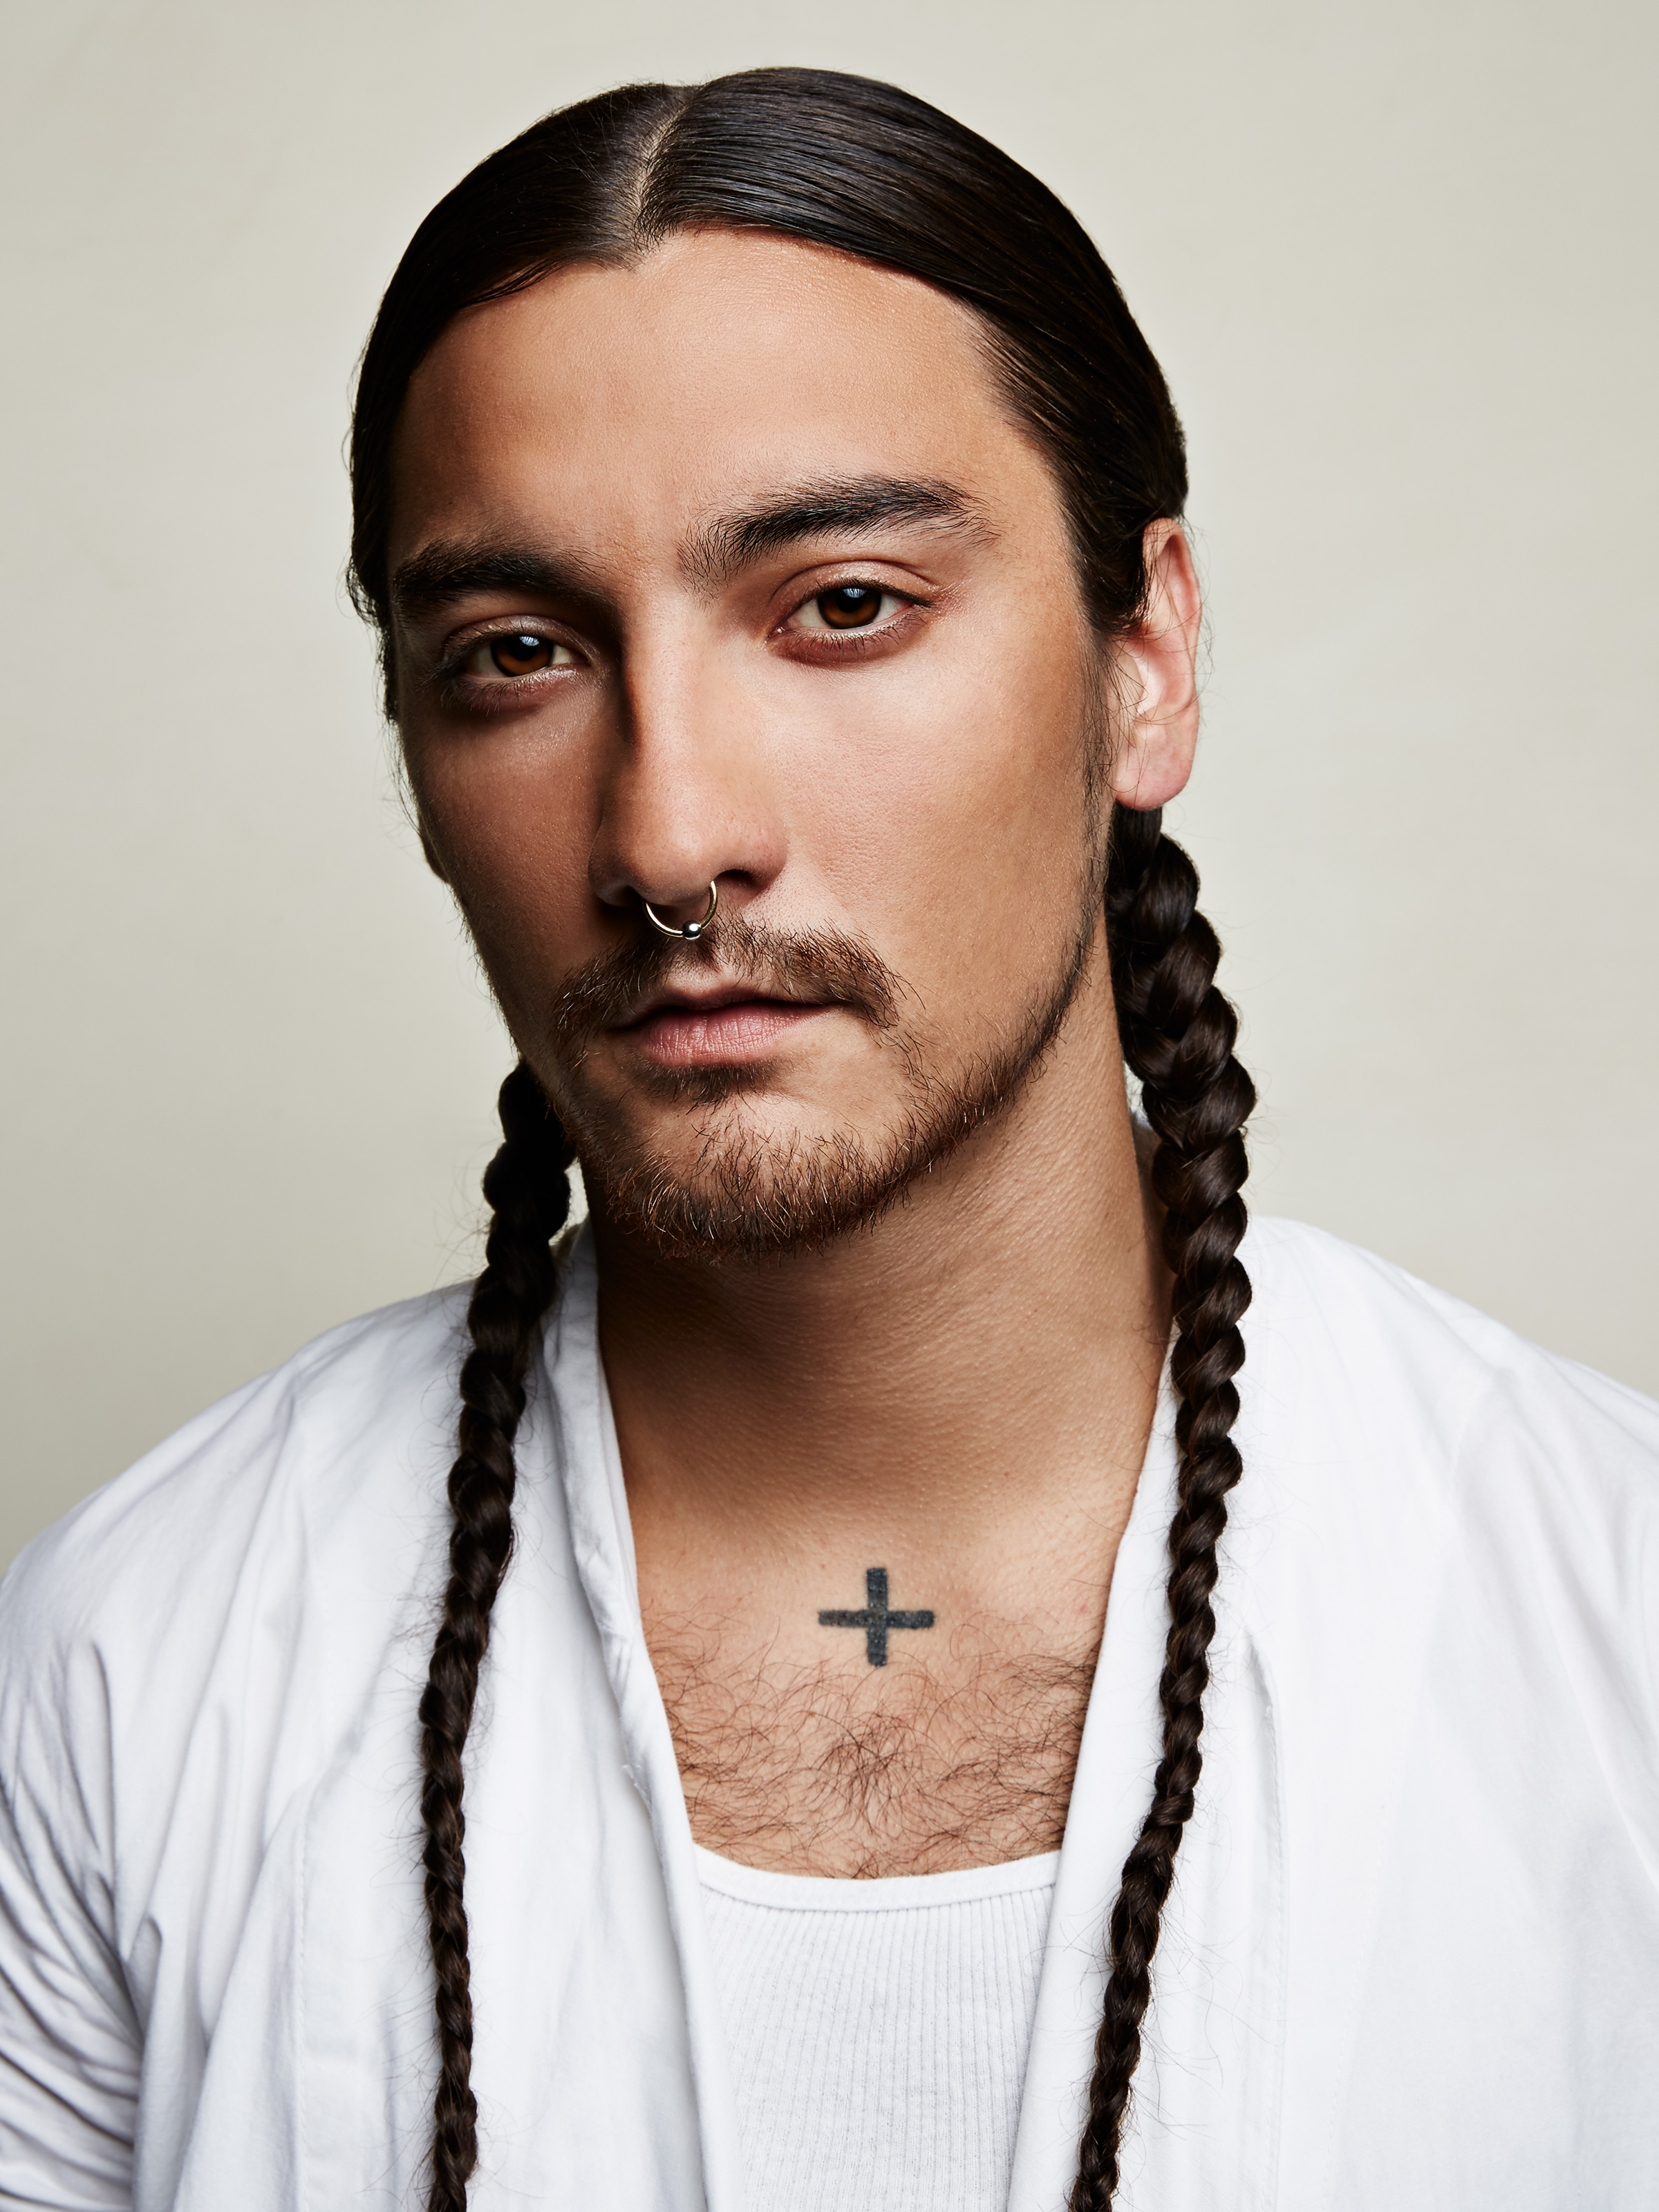 Towkio of SaveMoney